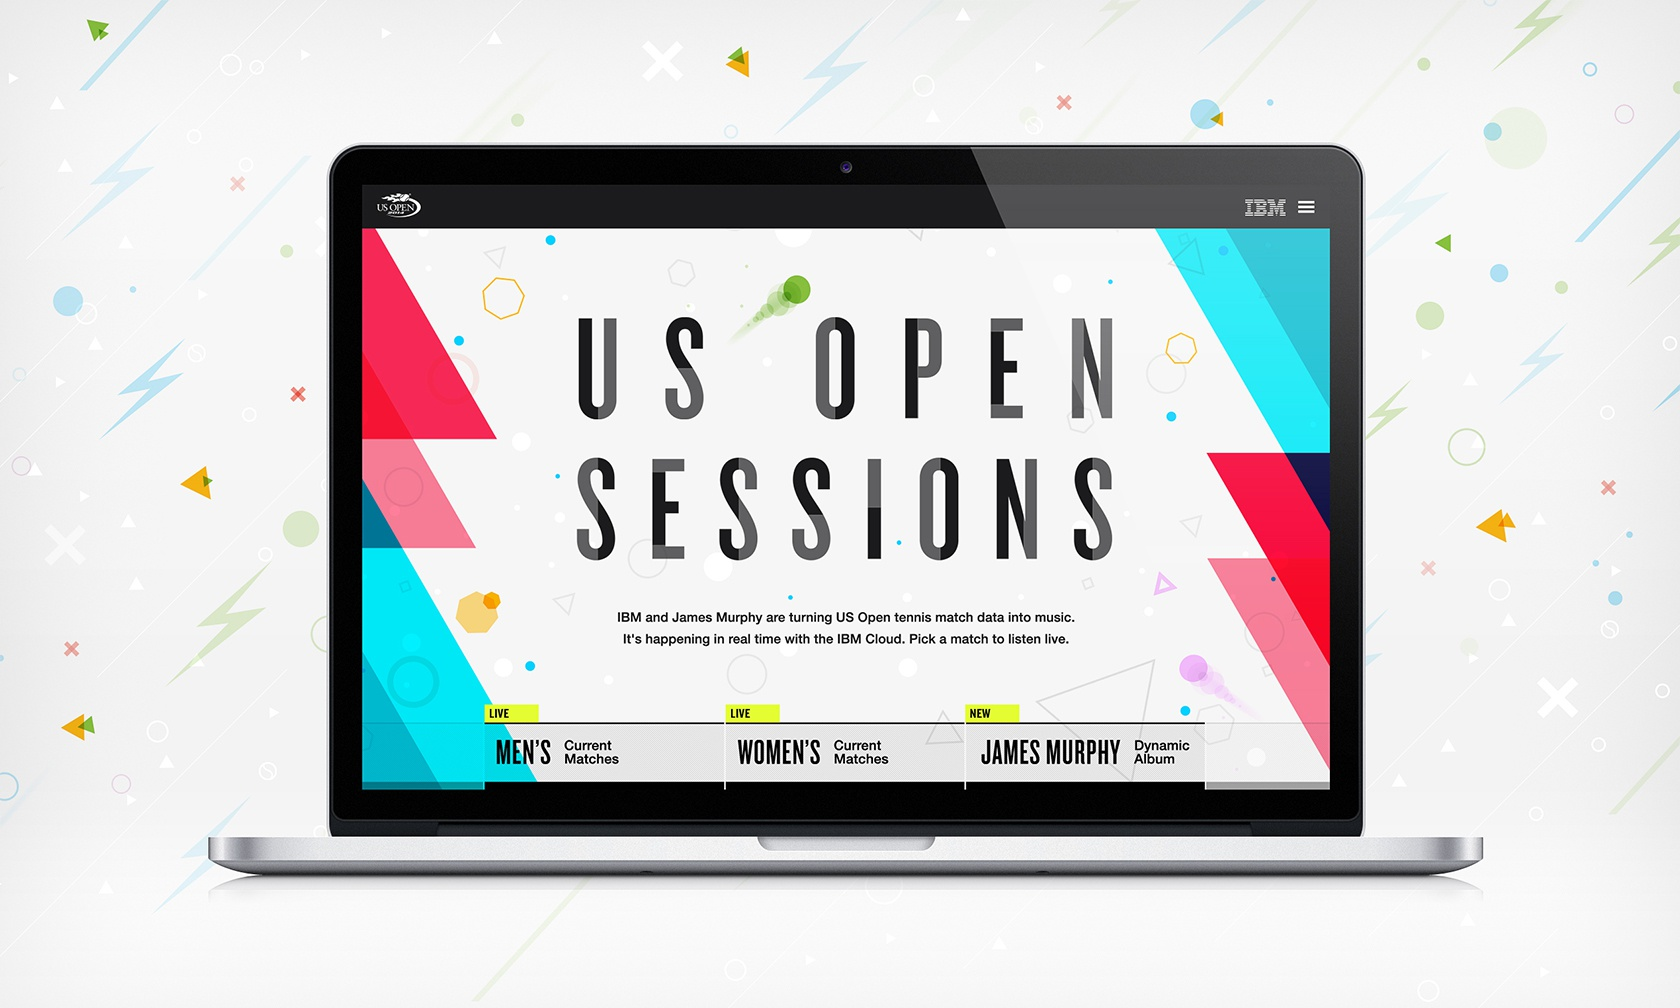 Us open sessions full1